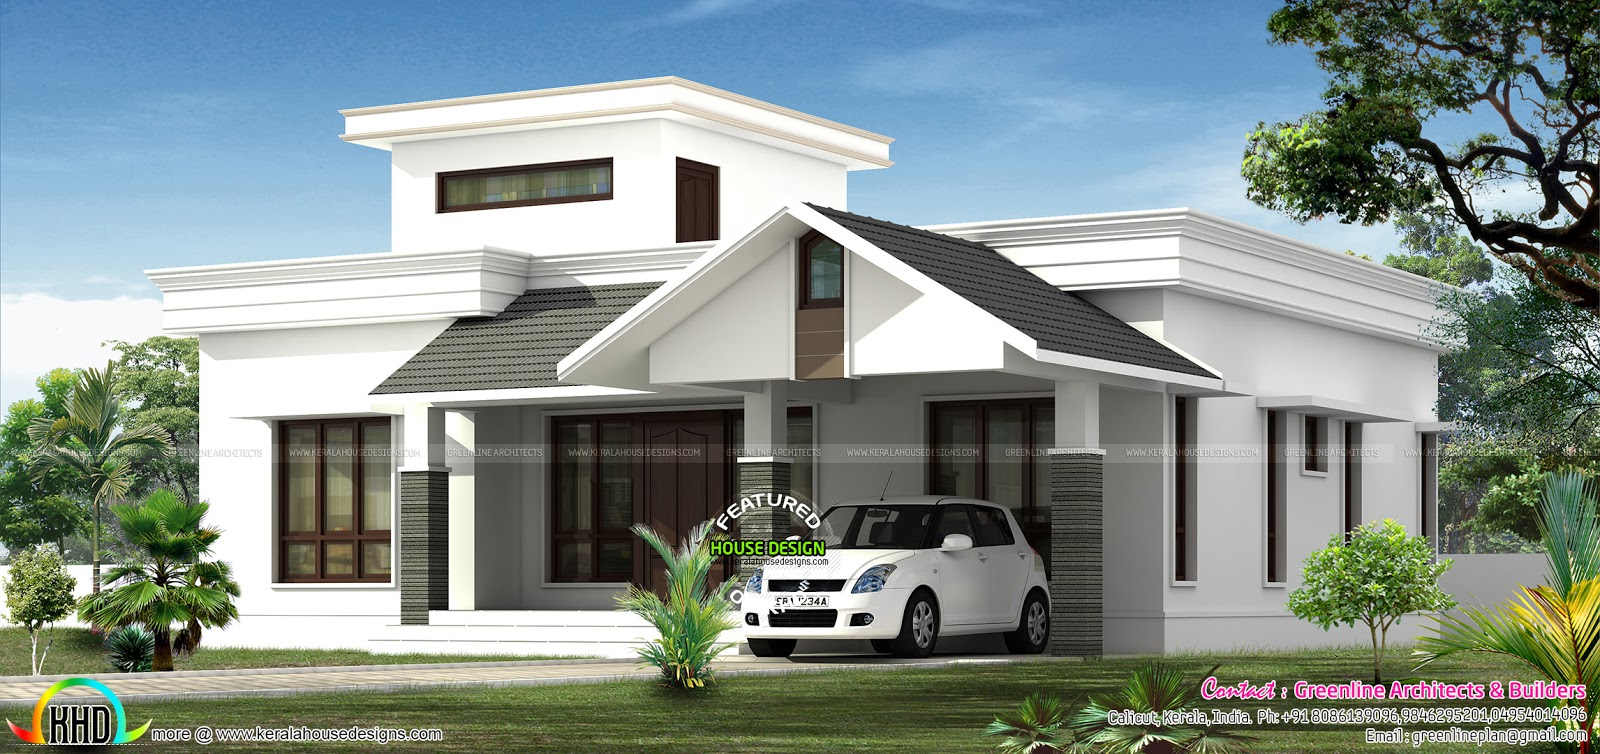 Low budjet single floor house design two side views ...